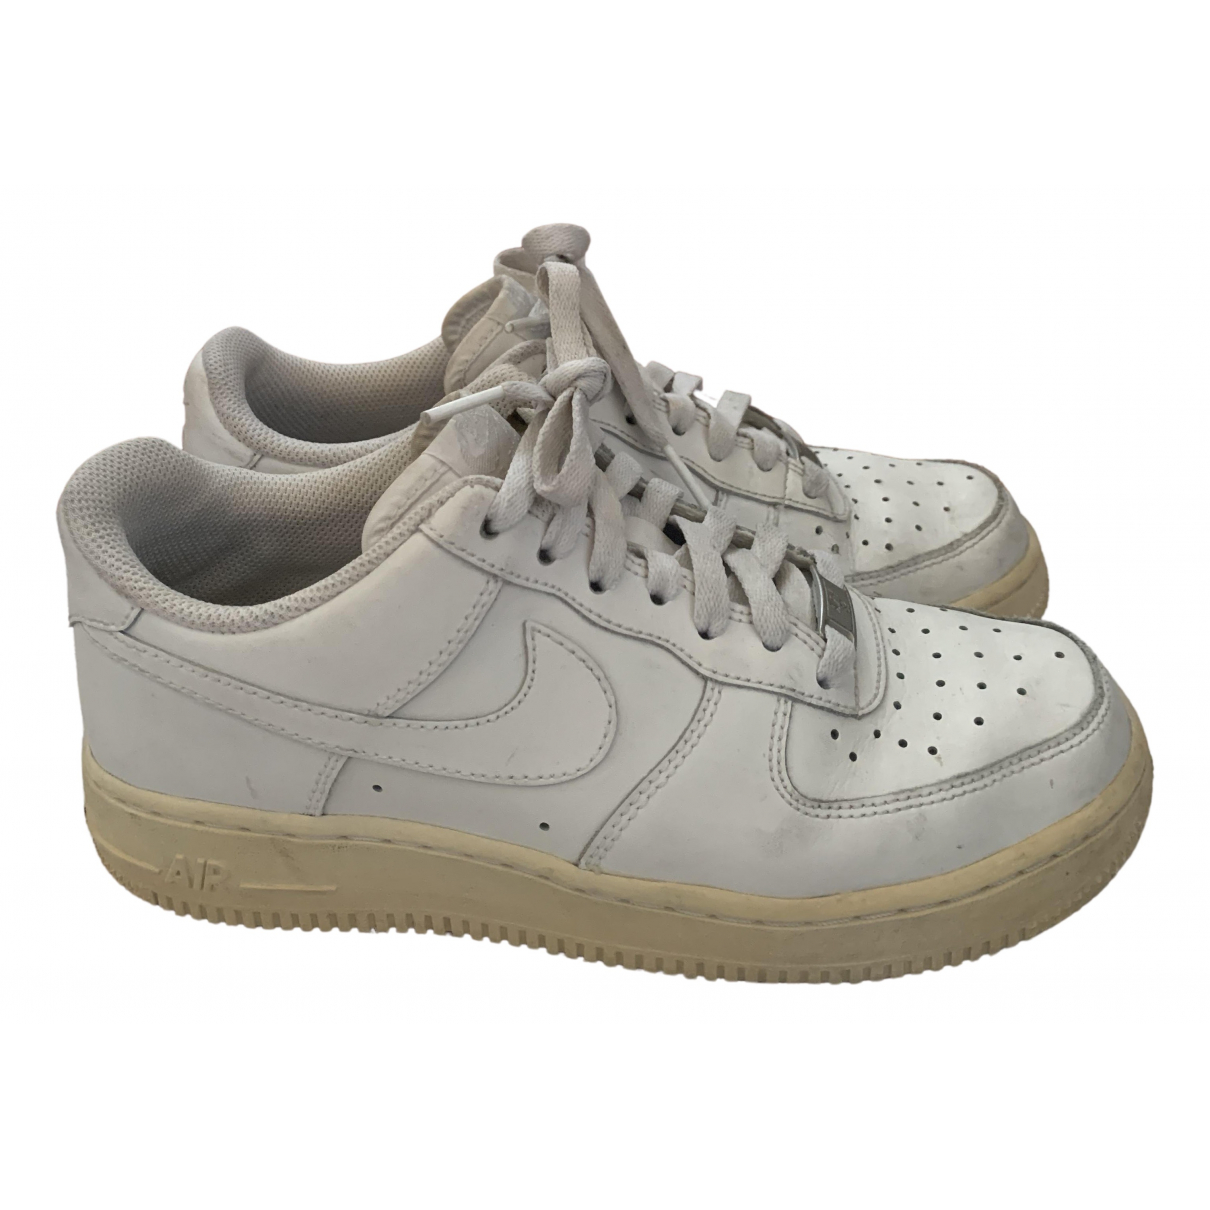 Nike Air Force 1 White Leather Trainers for Women 38.5 EU